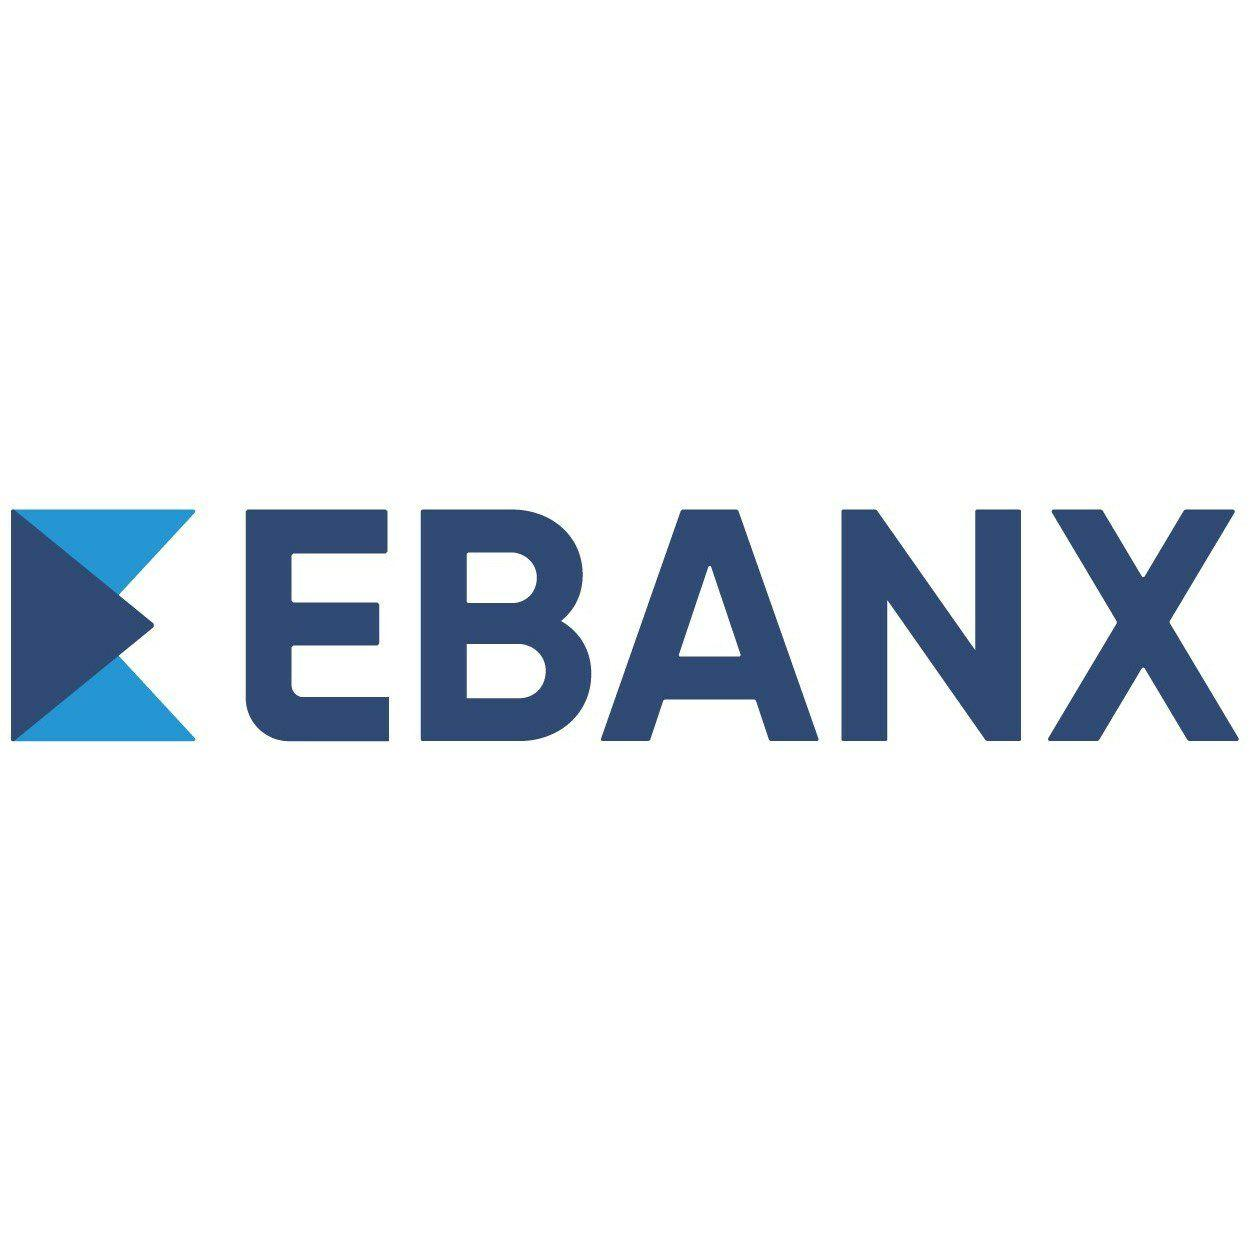 EBANX launches solution for international websites to accept Caixa debit card in Brazil